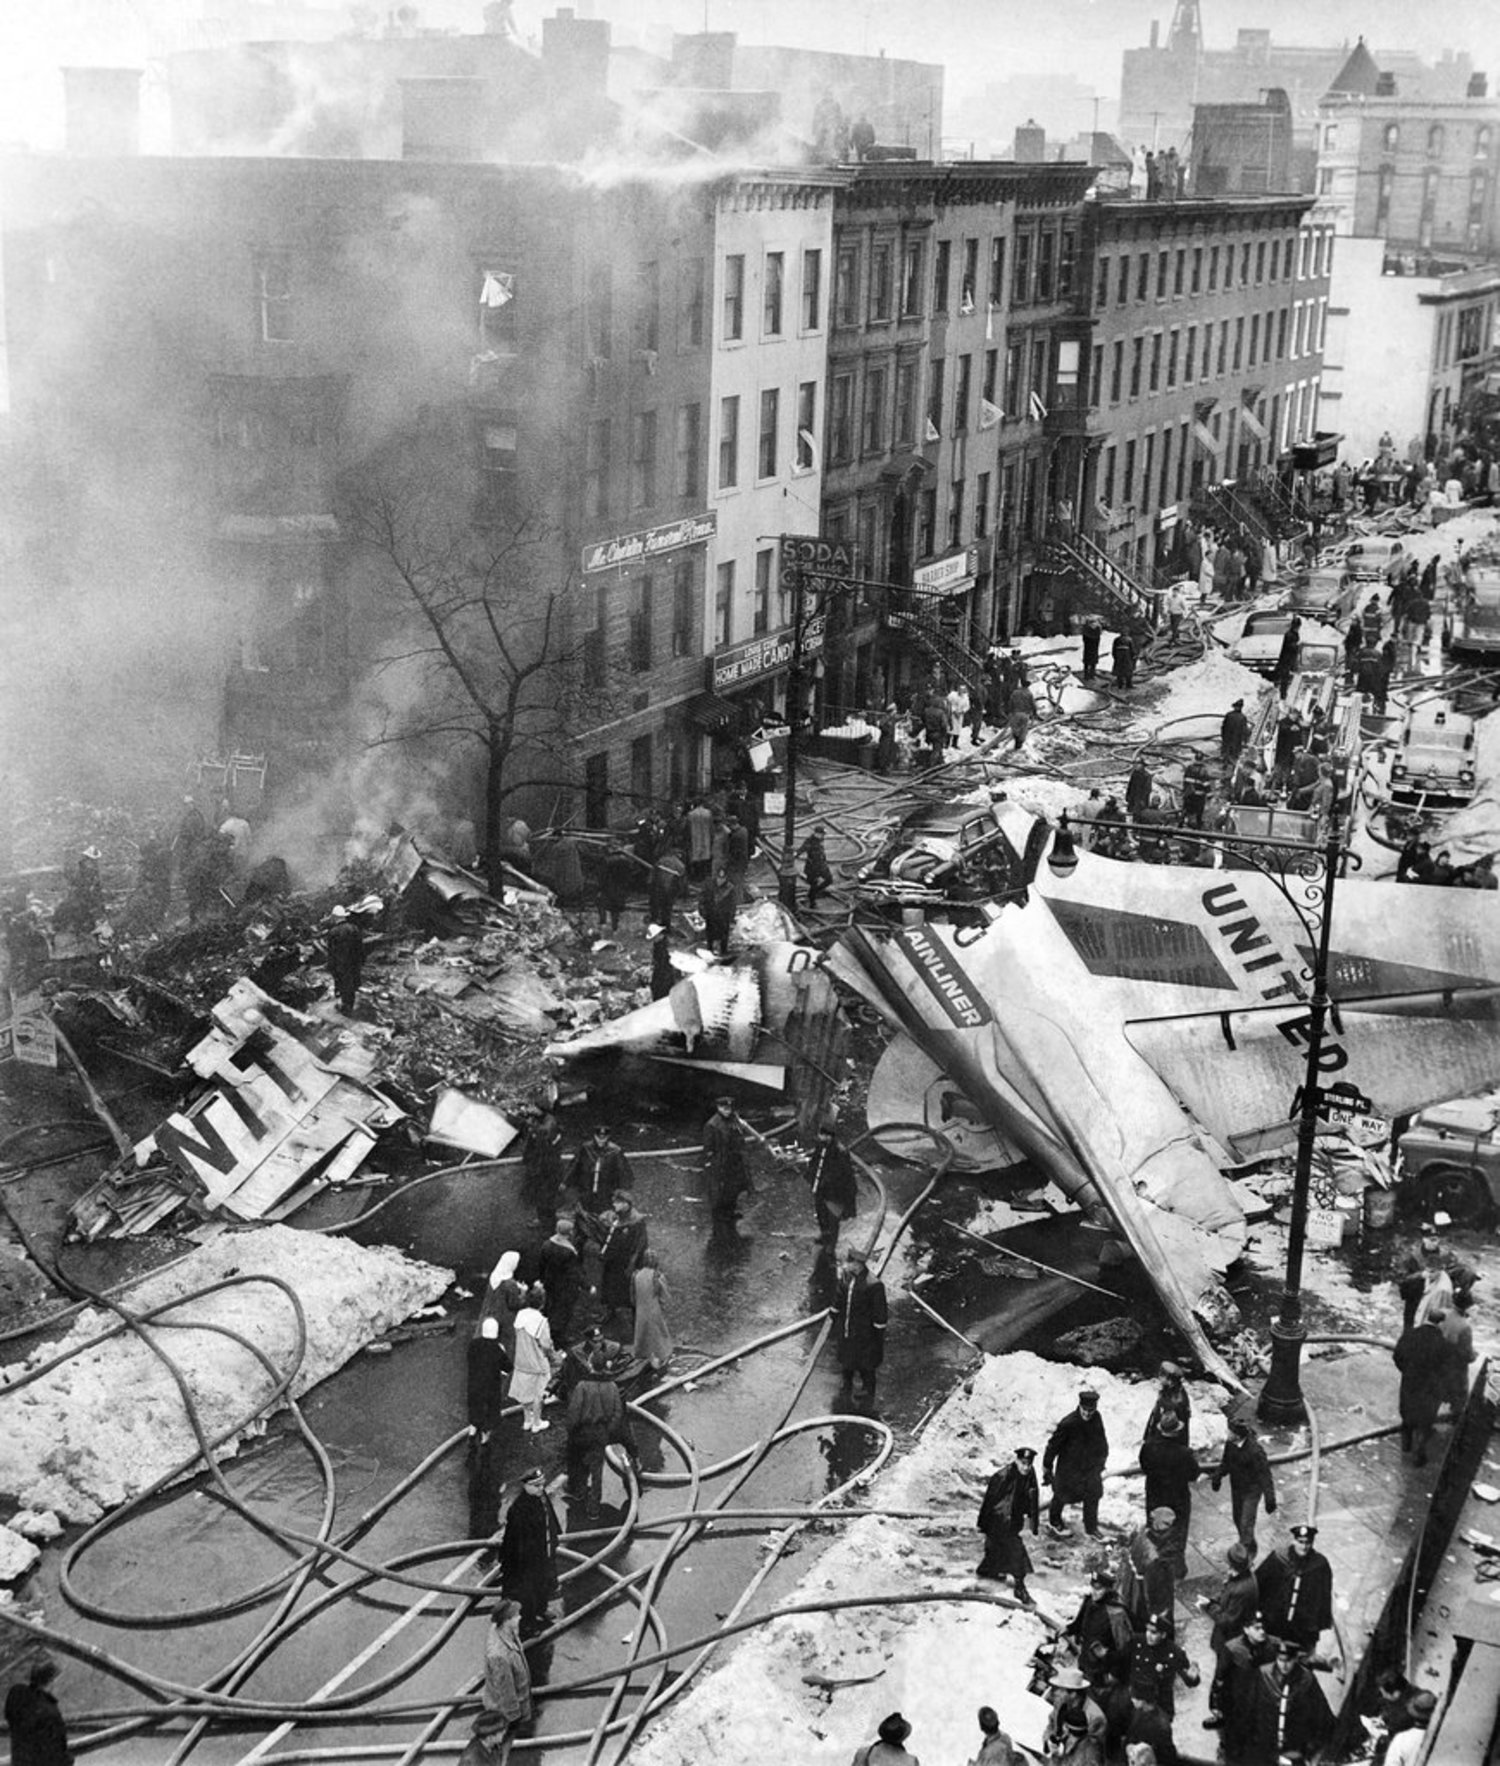 "Dec. 16, 1960: The wreckage of a jet airline fell on the ""once-fashionable Park Slope area"" at Sterling Place and Seventh Avenue, after two planes bound for New York International Airport (today's J.F.K.) and La Guardia Airport collided in midair. The second plane crashed on Staten Island; it was conjectured that the planes flew into each other there. One-hundred thirty-four people died, and the United DC-8 narrowly missed crashing into a school that was in session with ""more than 1,000 children"" in classes. It was the worst air disaster in history up to that point. The next day in Munich, there was another instance of a plane crashing into a busy metro area, with 52 people, including 19 Americans, killed."